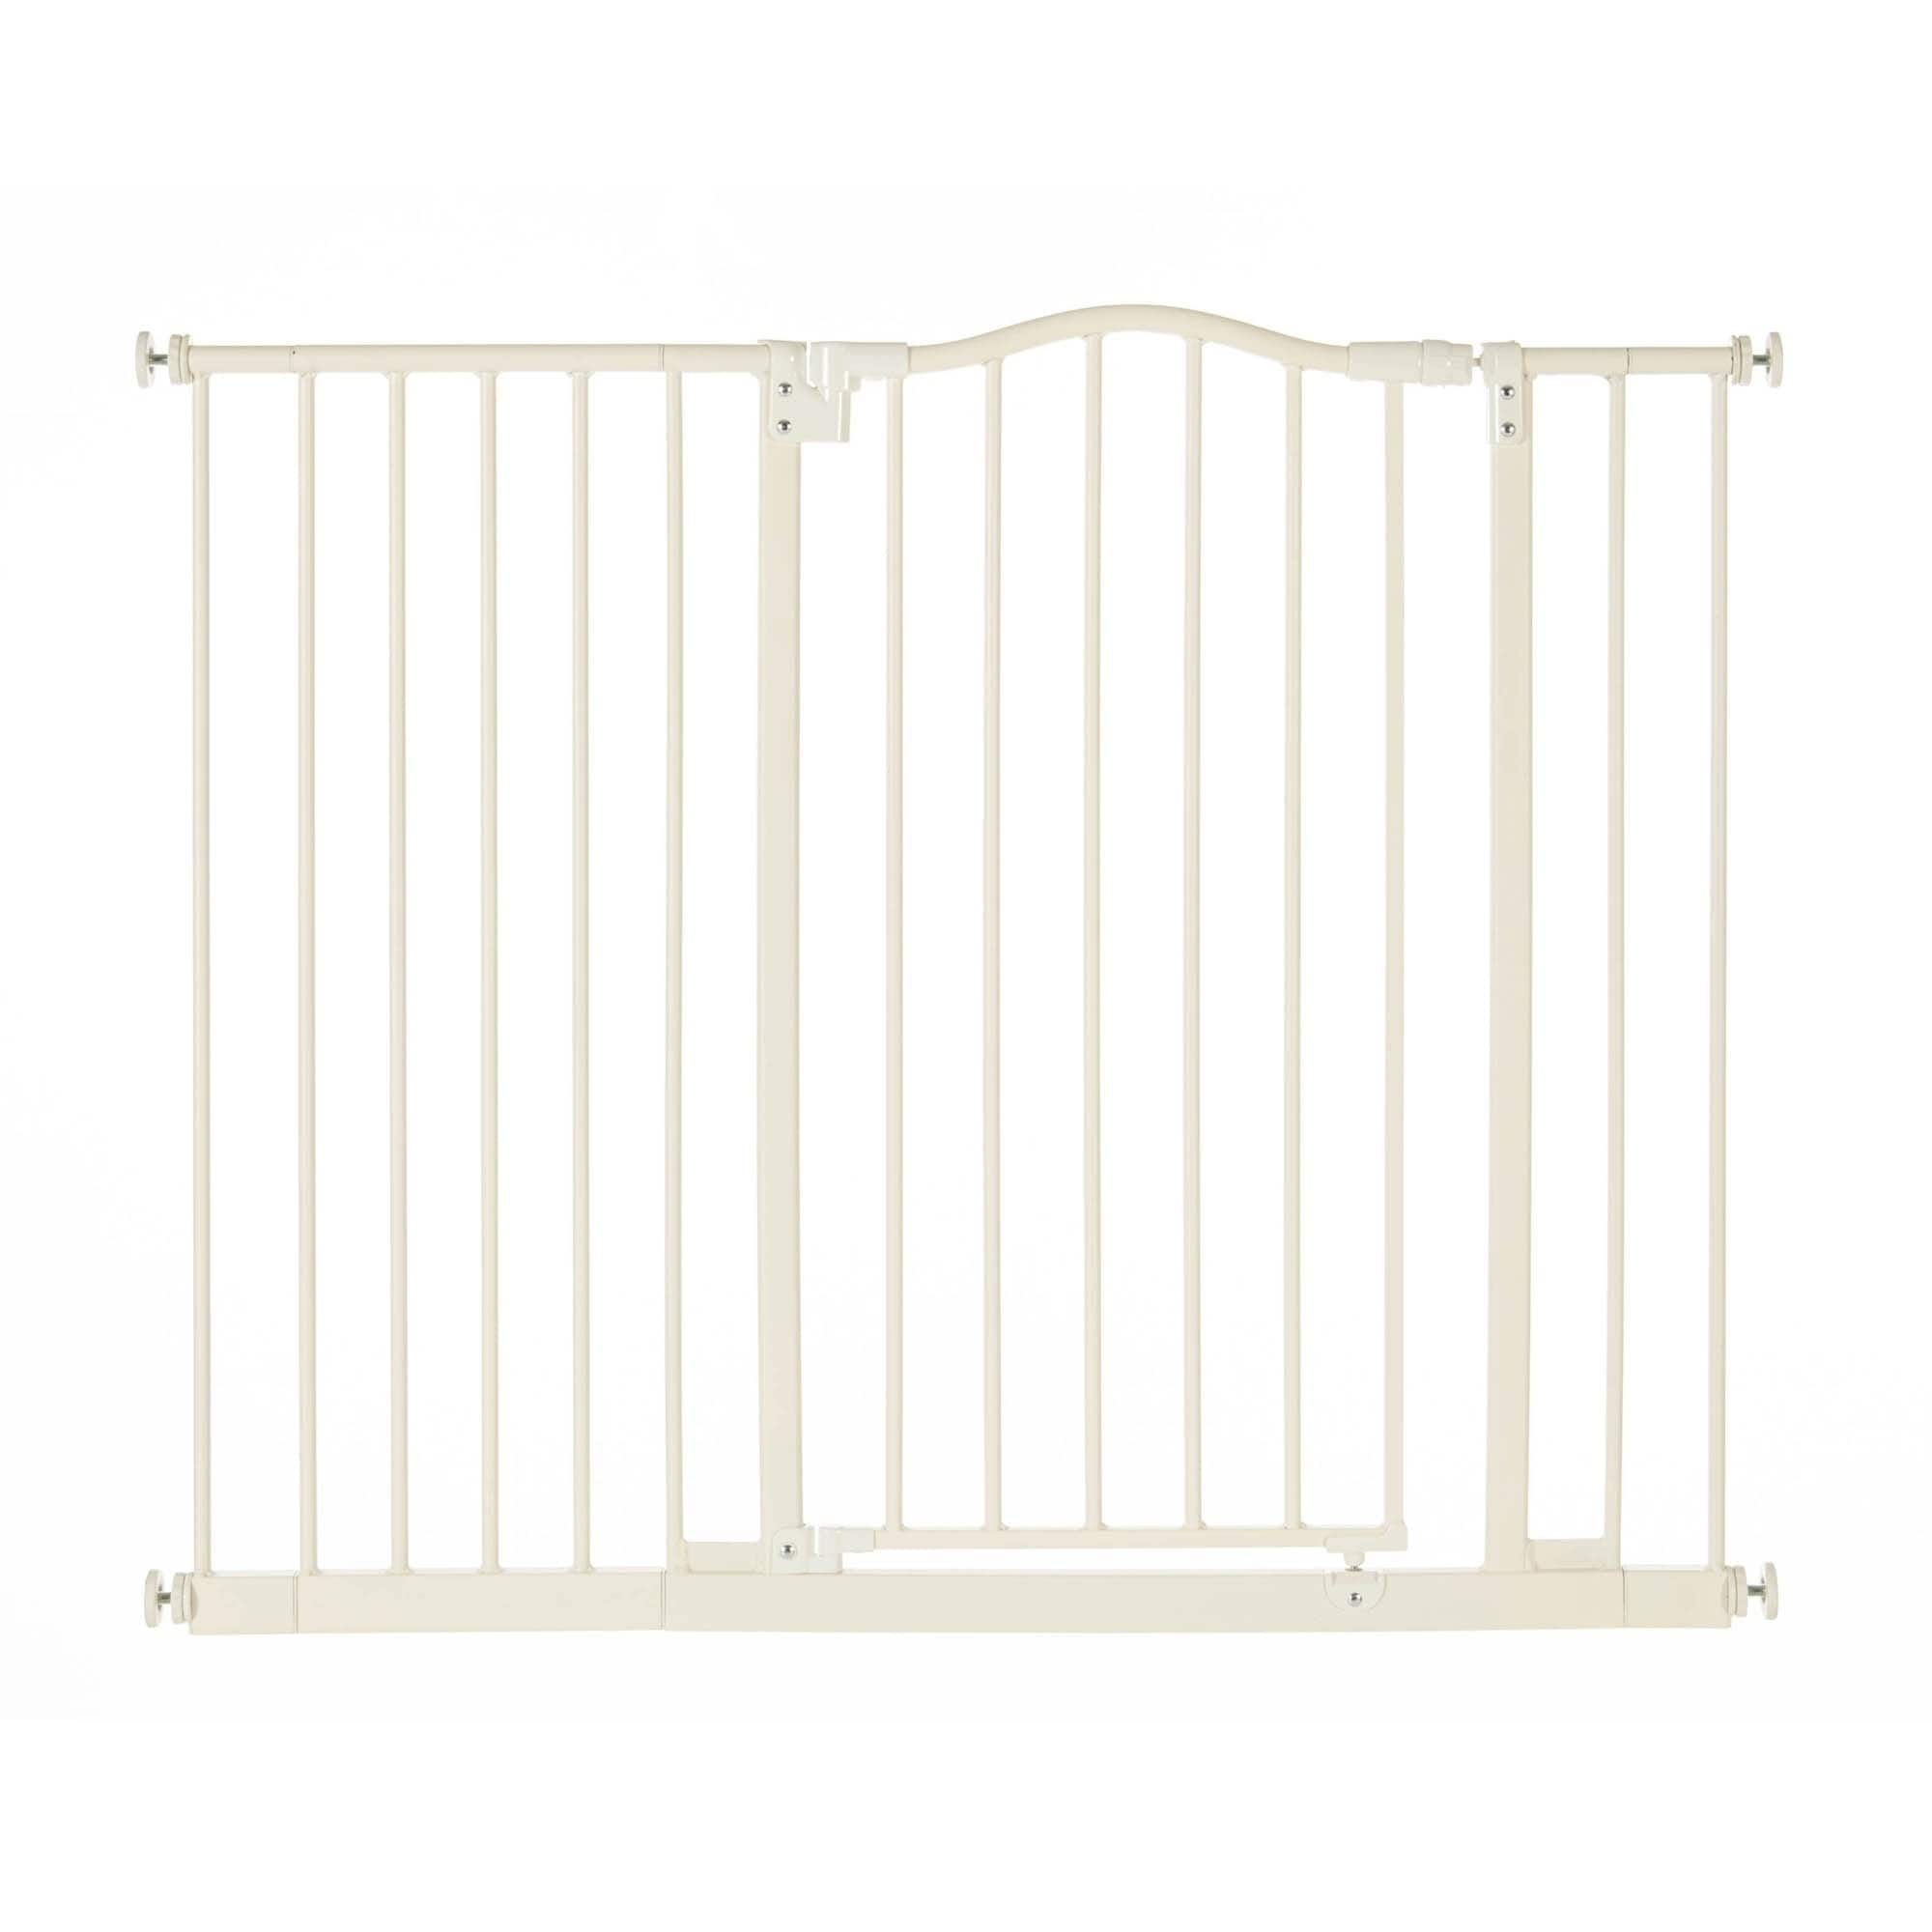 North States 4978 Supergate Portico Arch Tall & Wide Baby Safety Gate, Linen